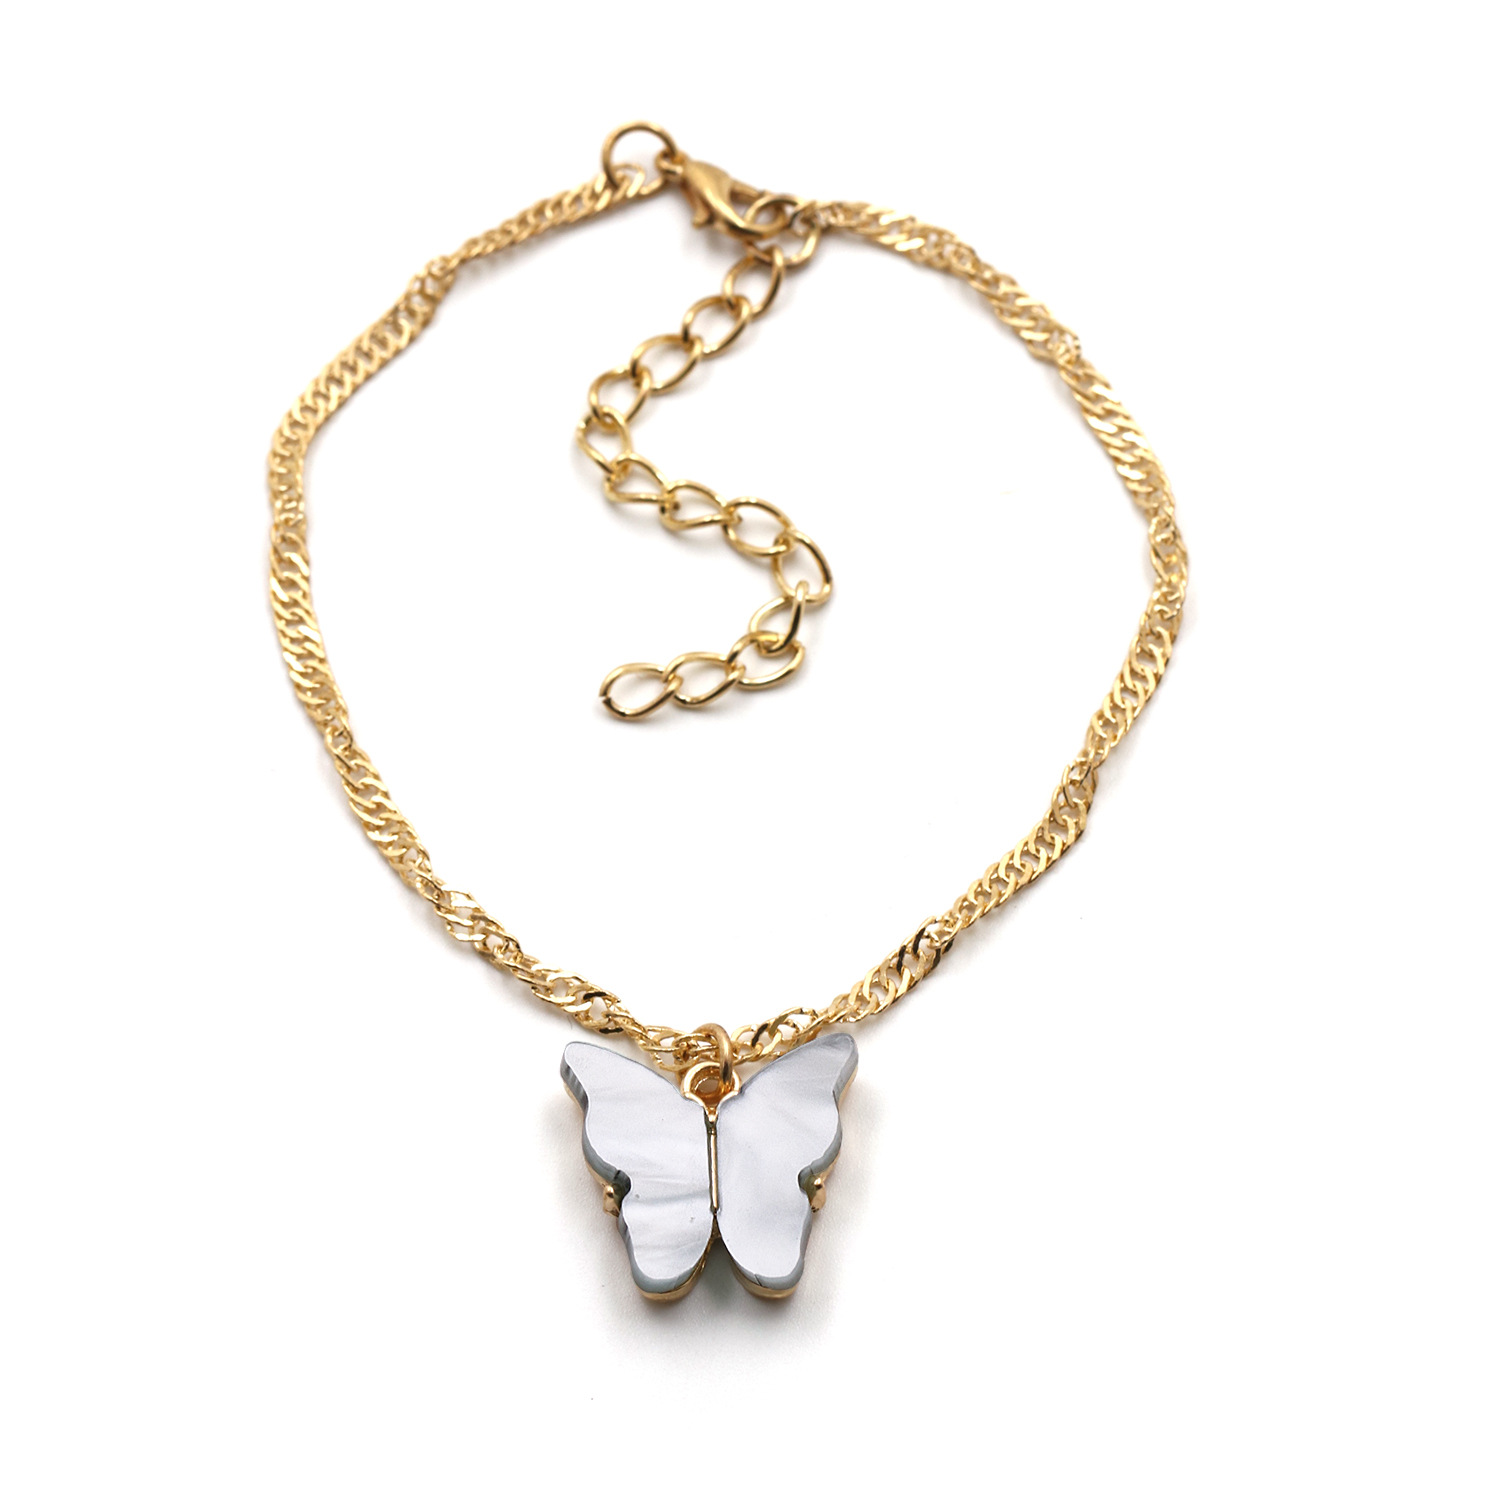 fashion wild accessories popular color butterfly necklace clavicle chain wholesale nihaojewelry NHJJ222378